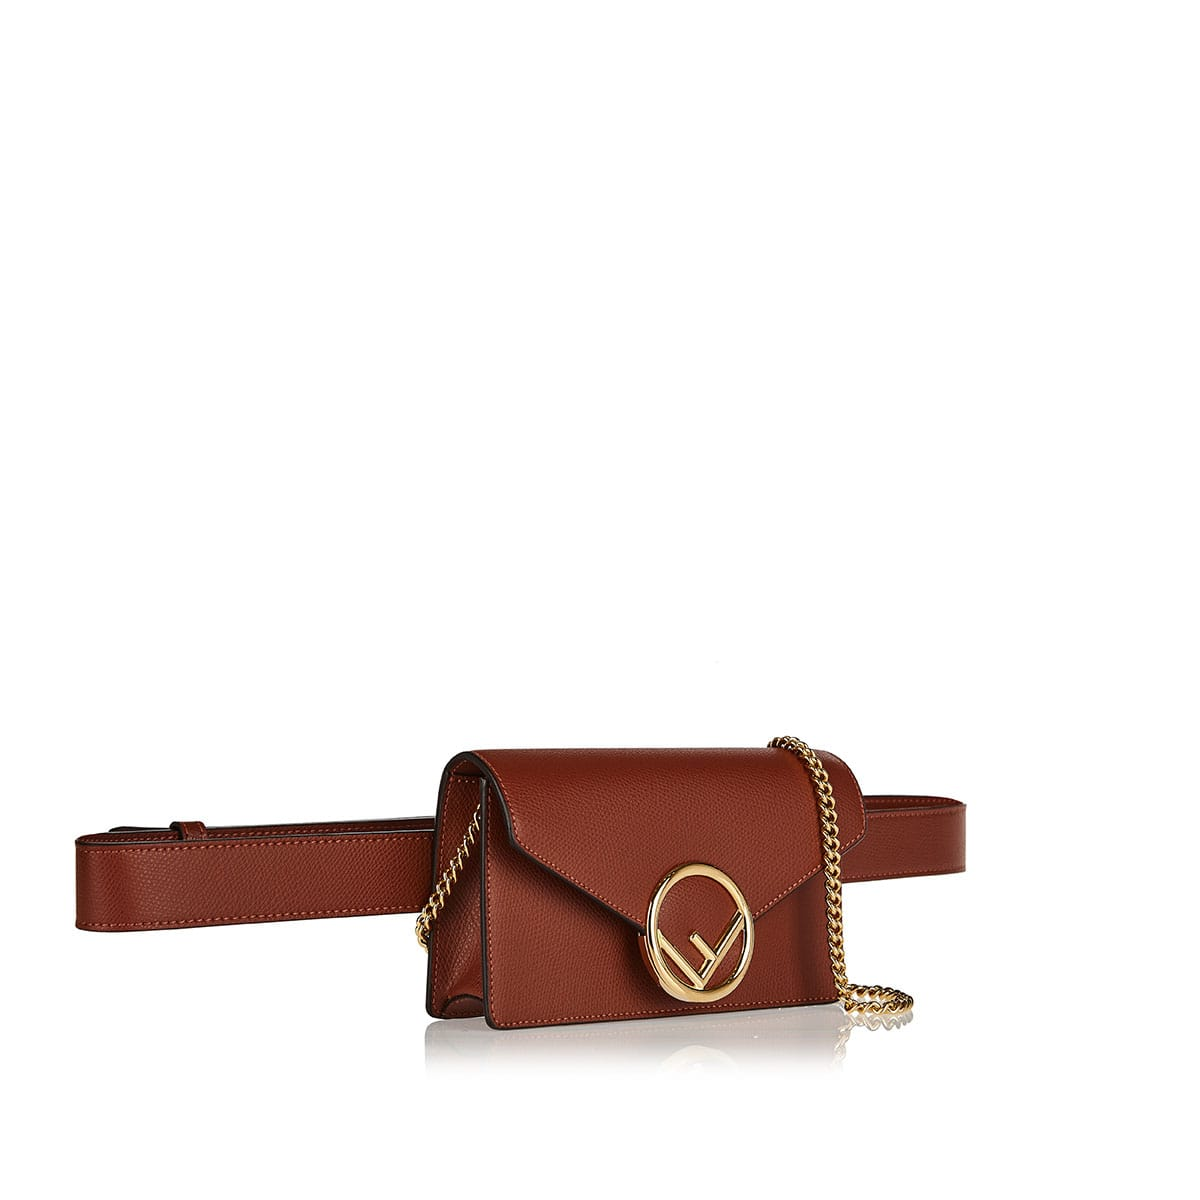 F-logo leather belt bag